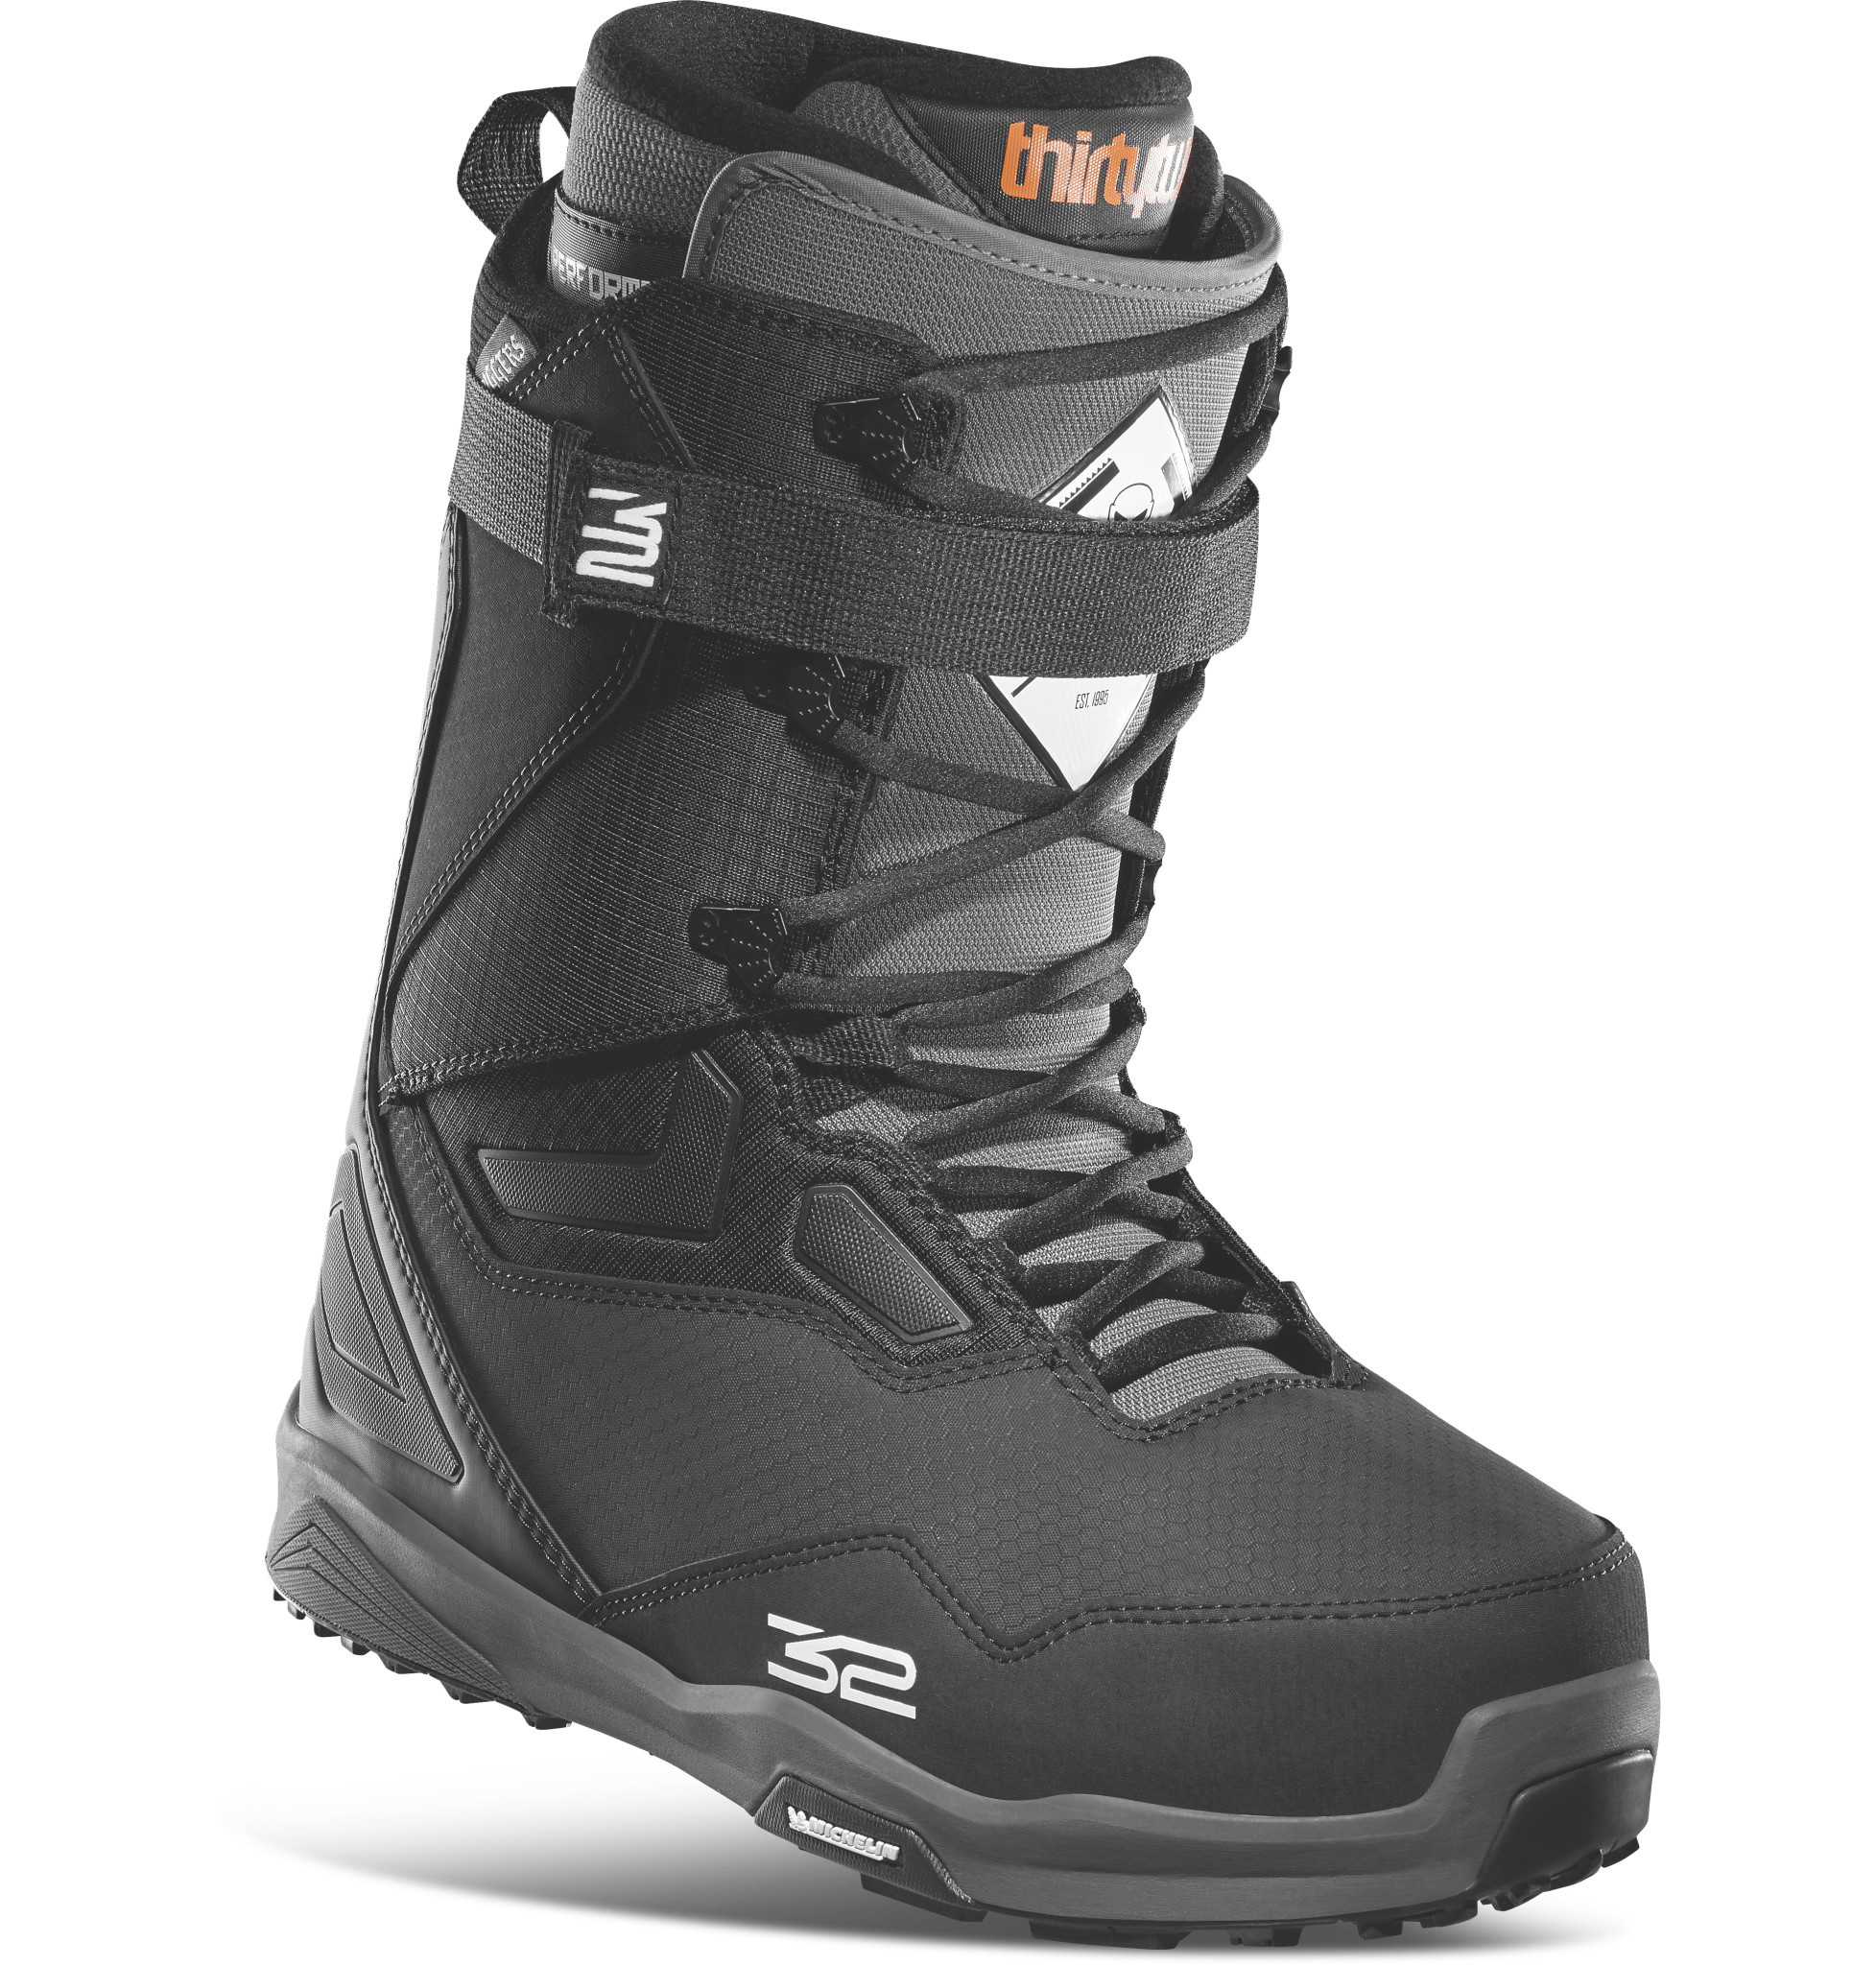 ThirtyTwo ThirtyTwo M's TM-2 XLT Diggers Snowboard Boot (20/21)